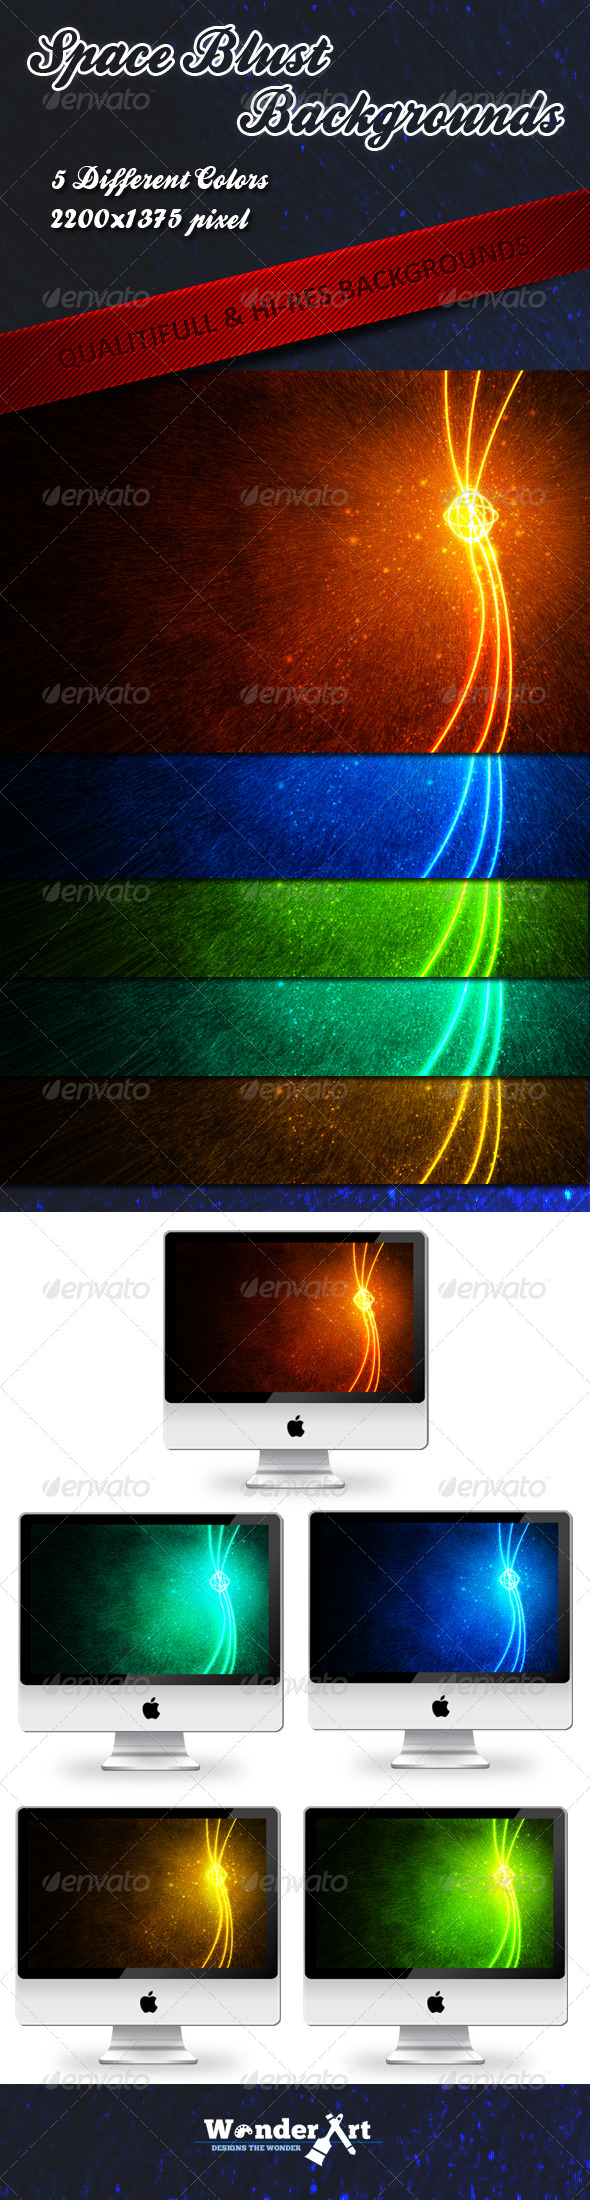 Space Blust Background - Abstract Backgrounds